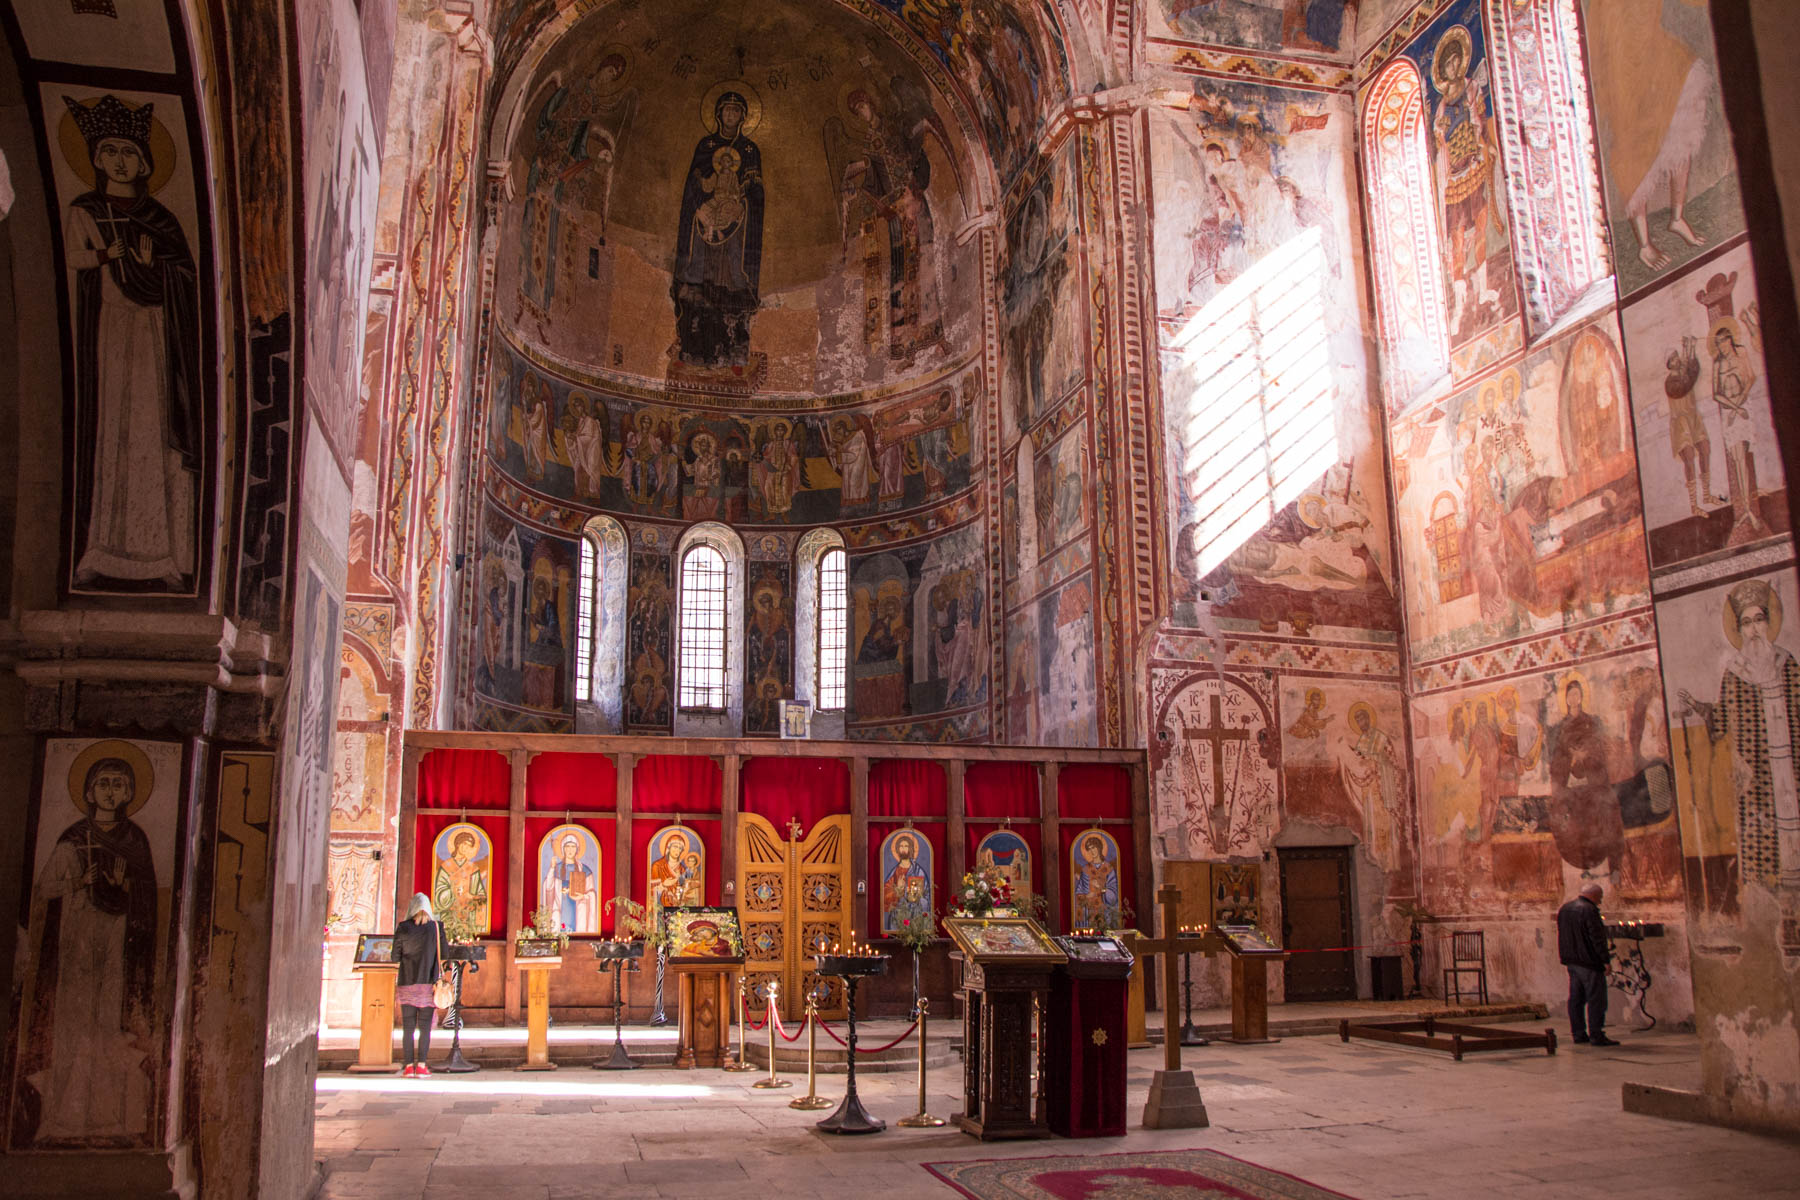 Photos to convince you to visit Georgia: The frescoes in Gelati monastery in Georgia